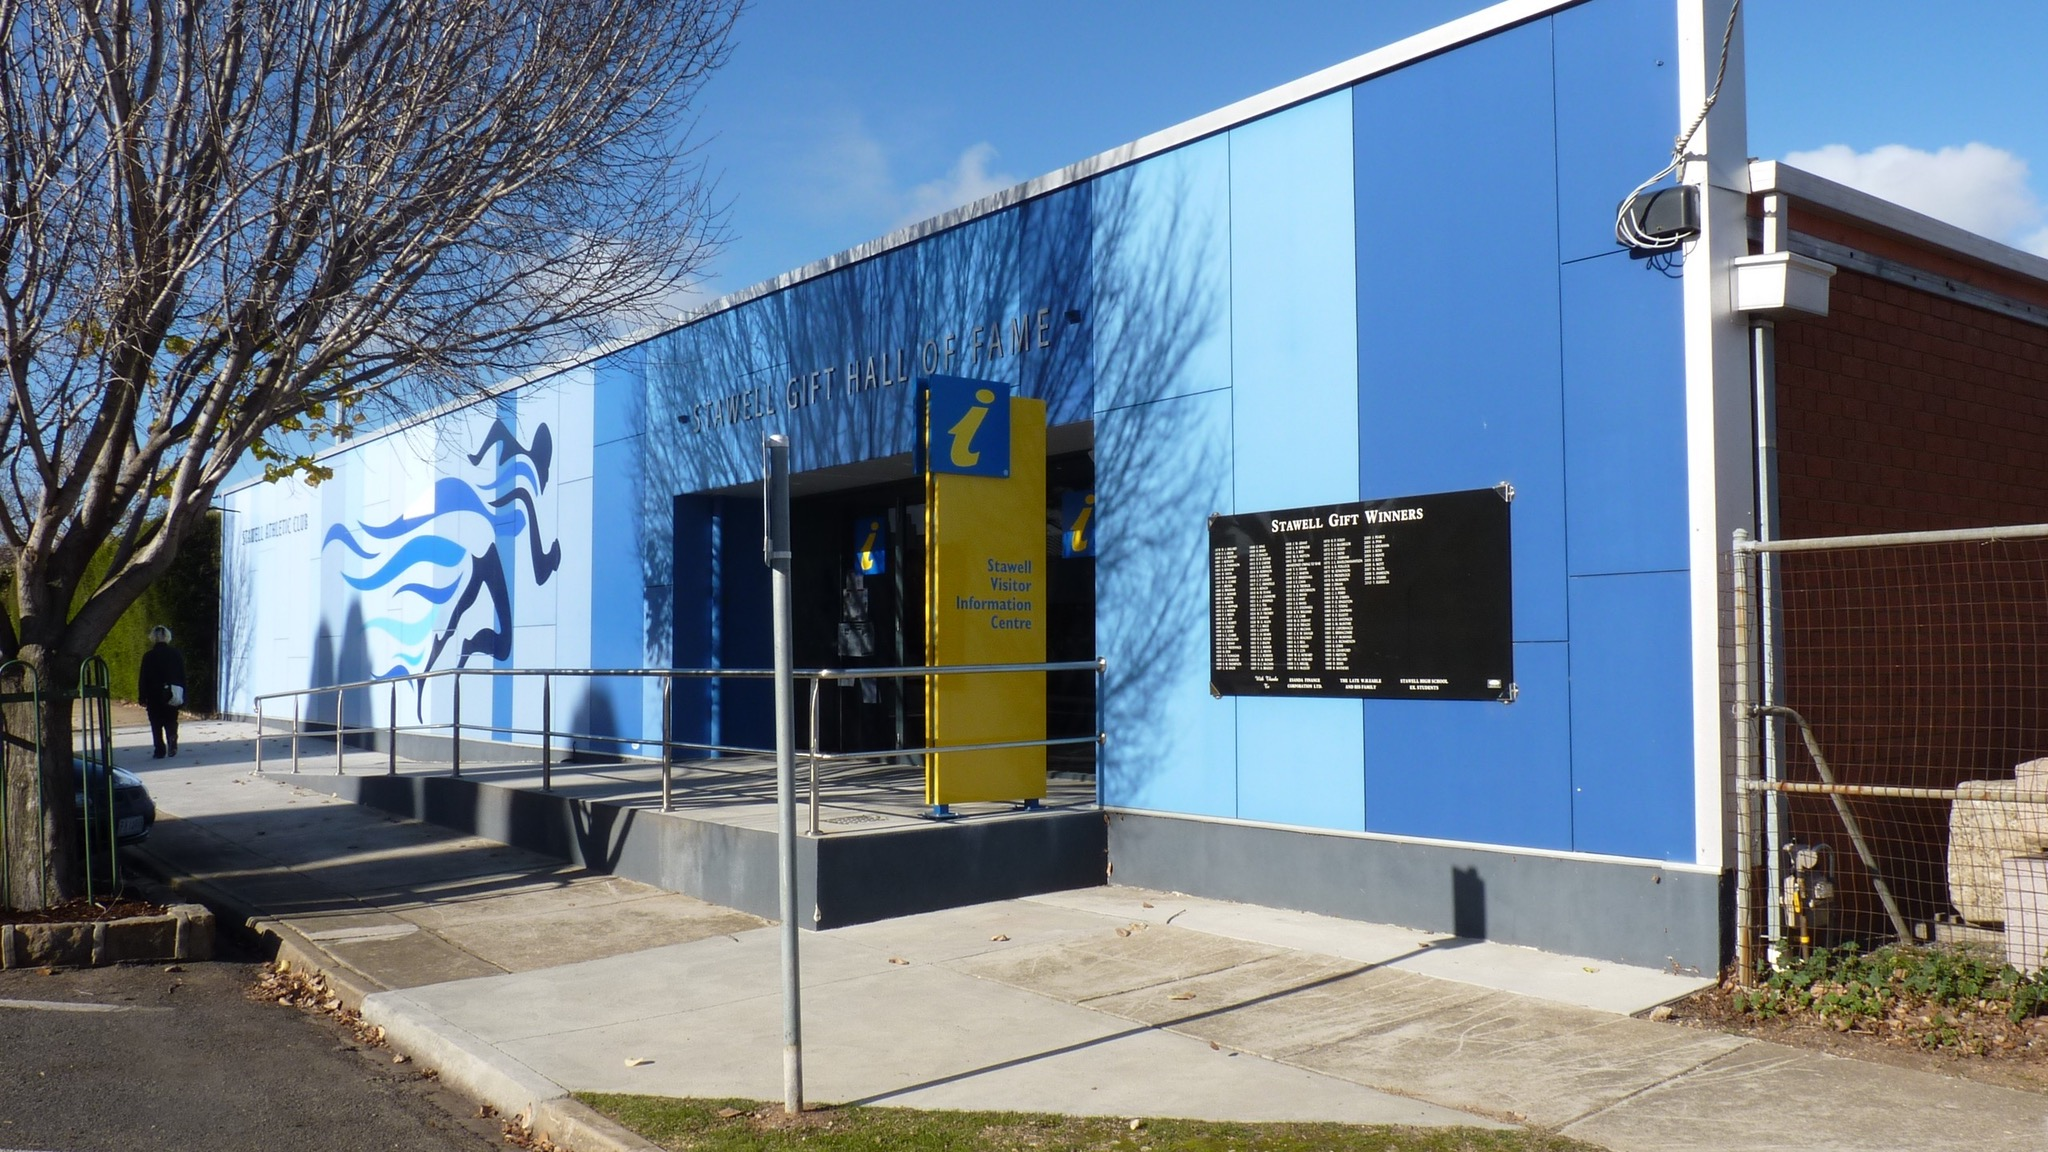 Stawell Visitor Information Centre